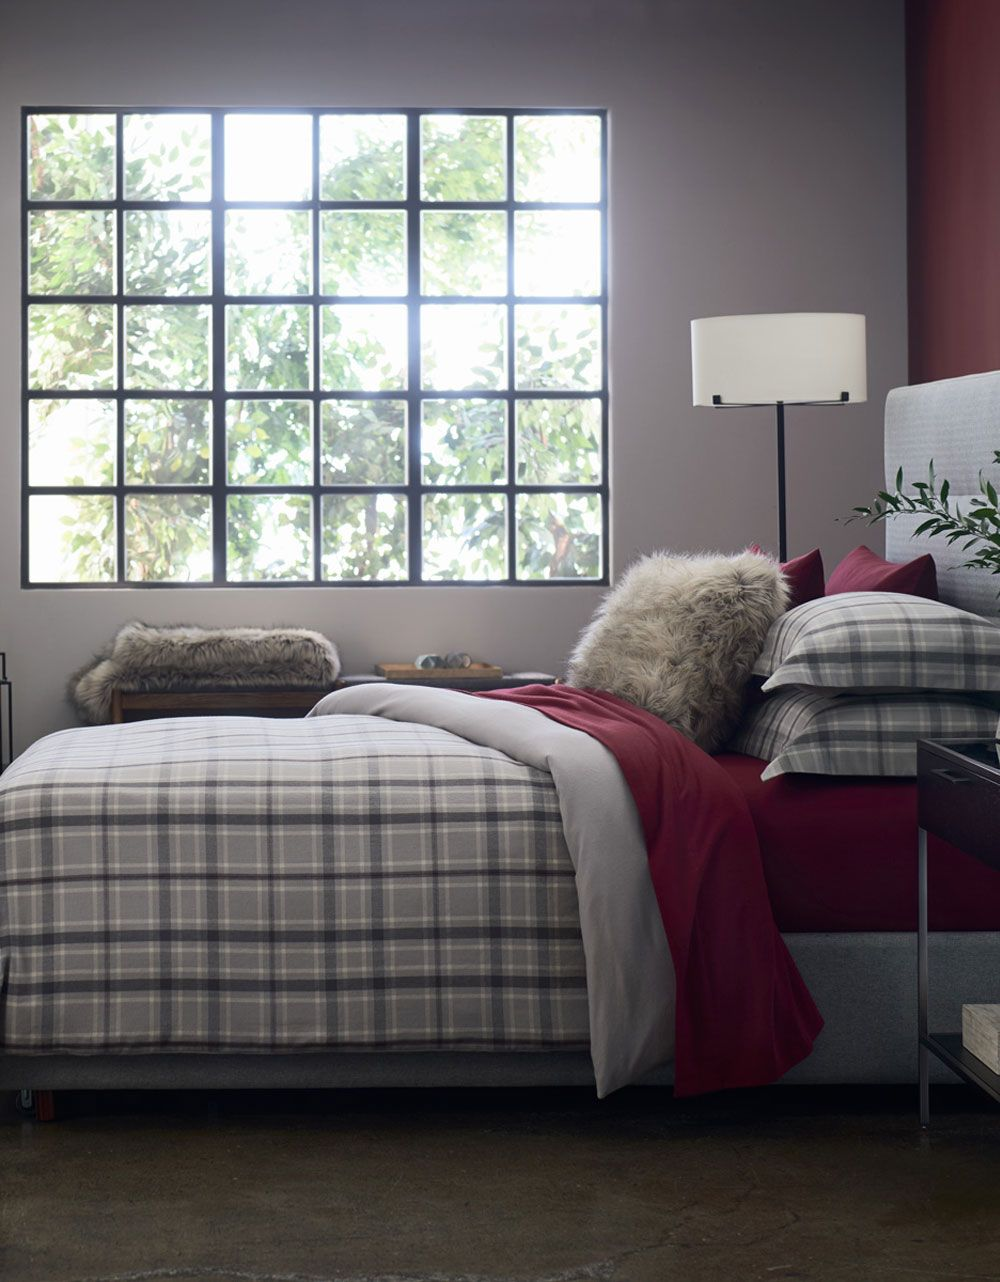 Red flannel sheets  Walker Flannel Bed  Red accents Bedding collections and Cozy